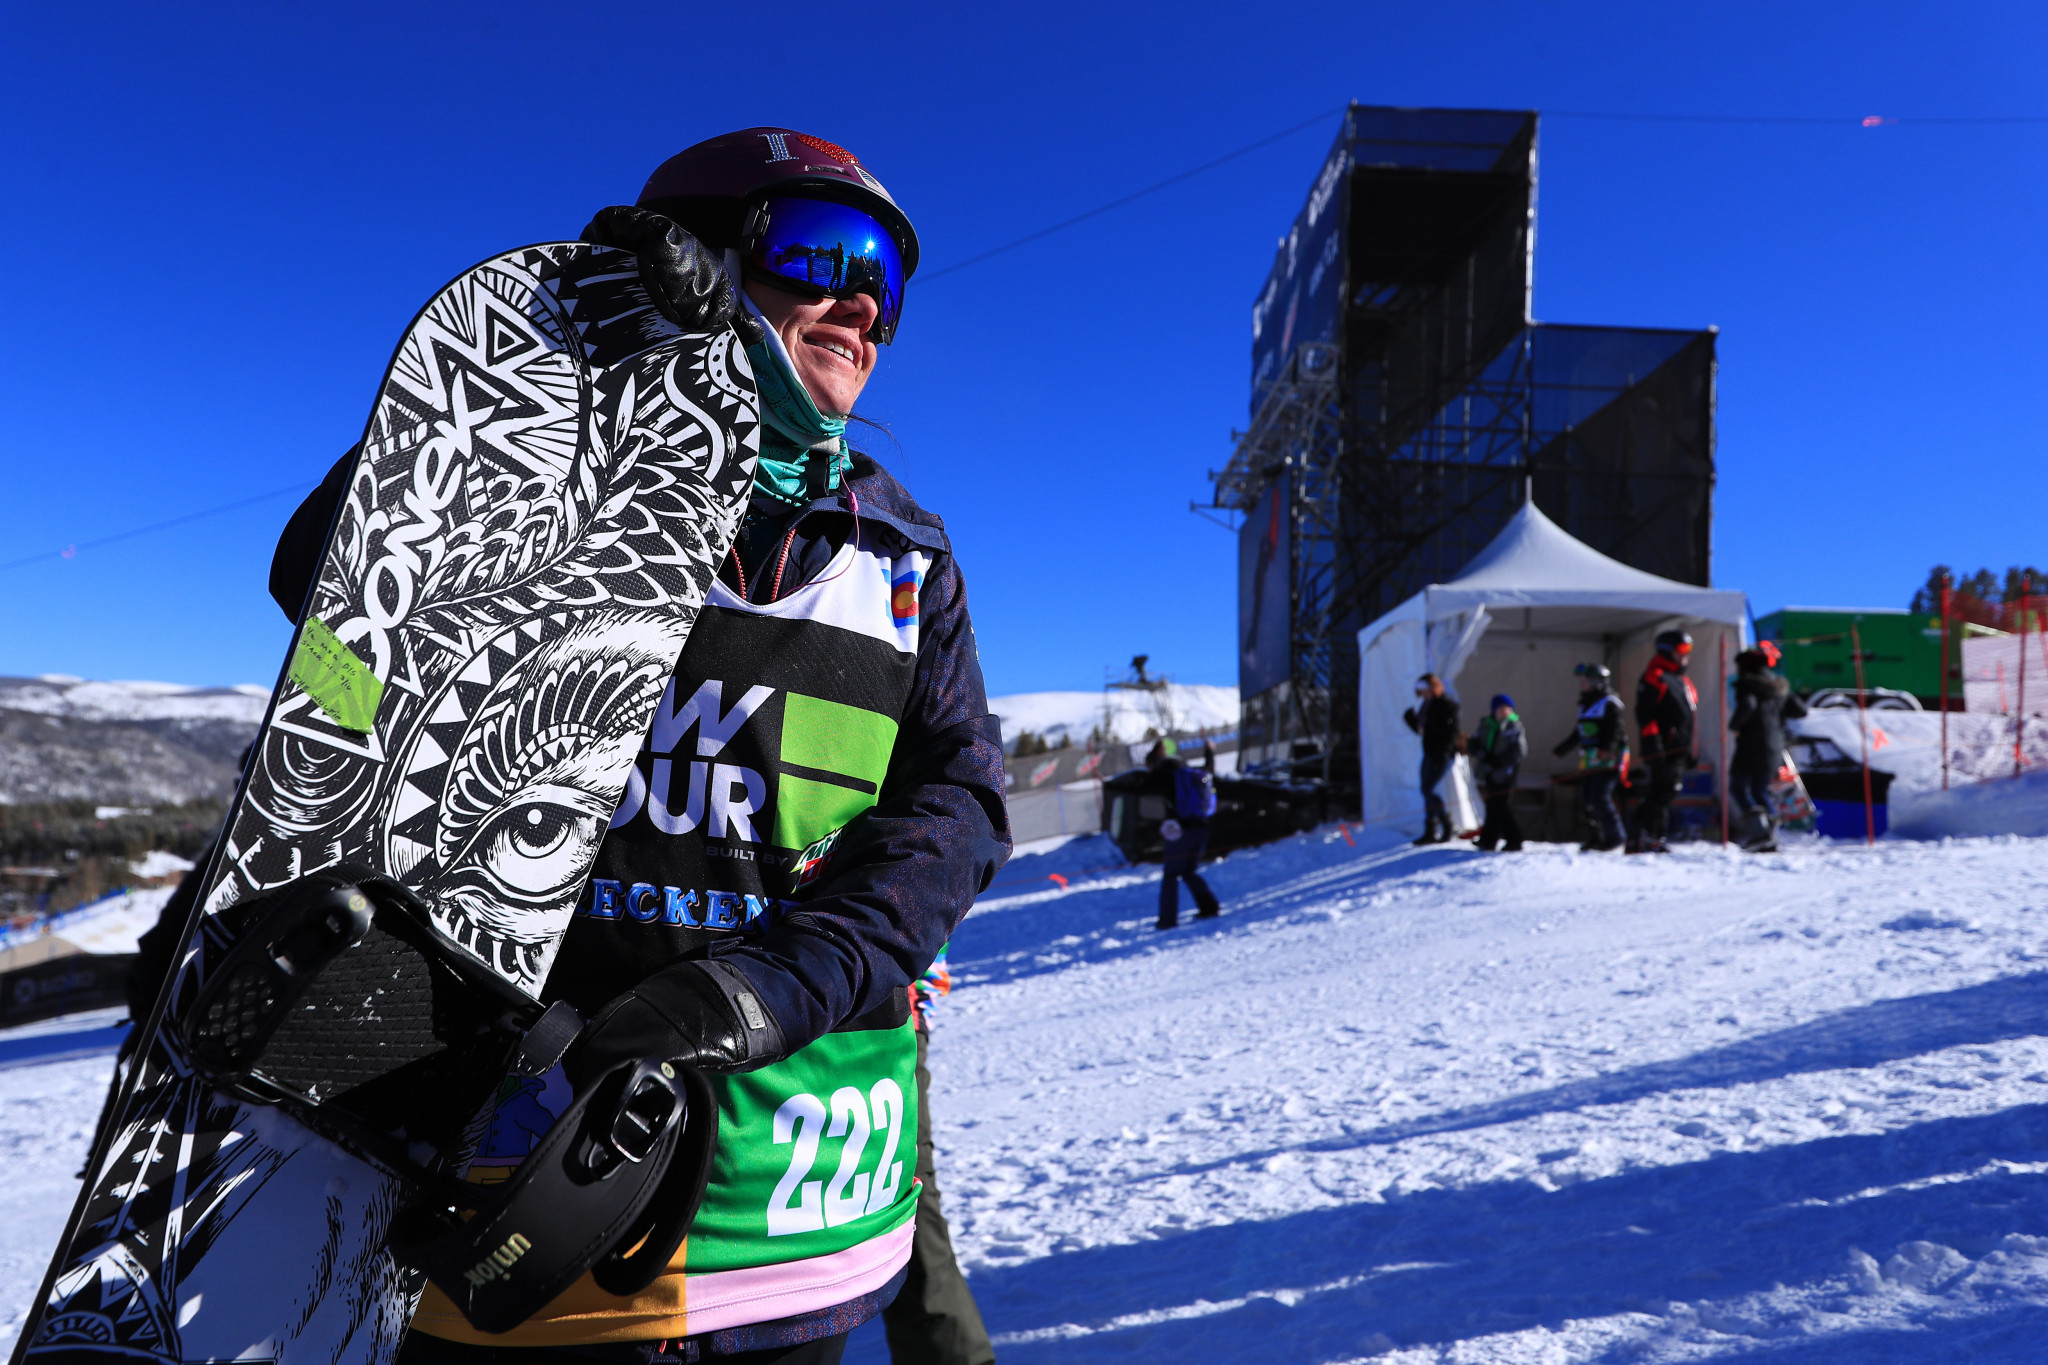 Paralympic snowboarder Coury to help coronavirus patients in nursing career